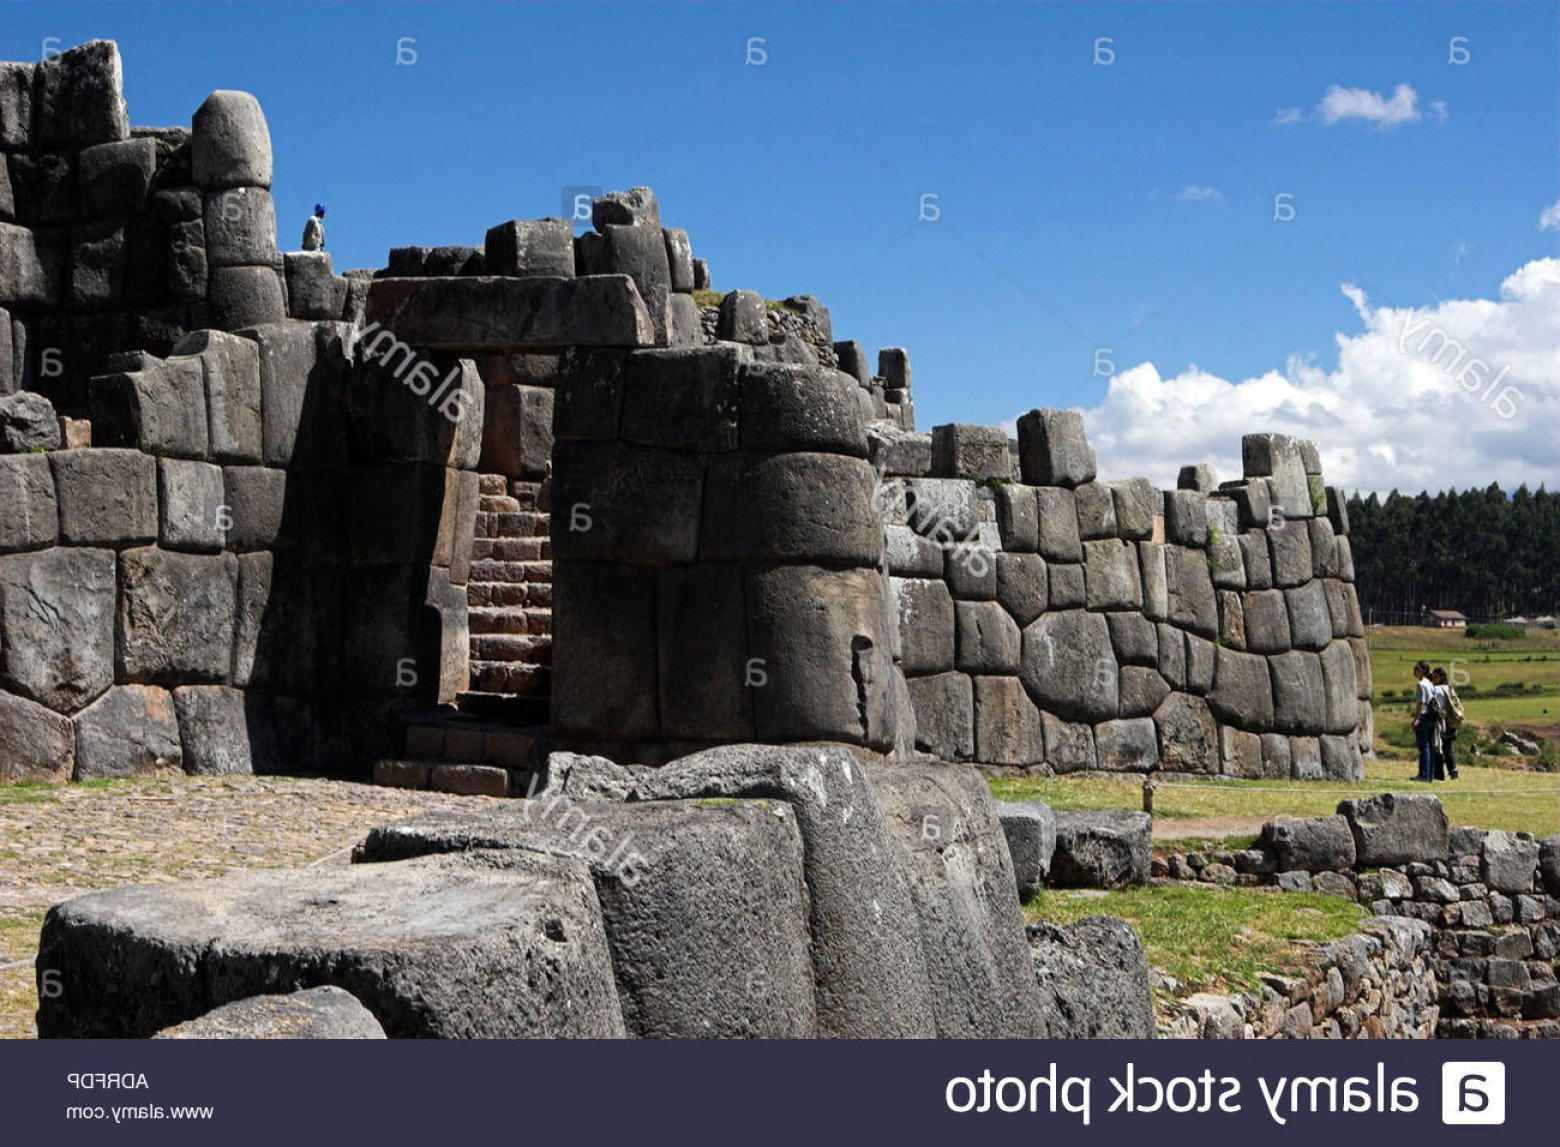 Vector South America Ancient Ruins: Stock Photo Sacsayhuaman Inca Fortress Ruins Door In Ancient Stone Terrace Wall